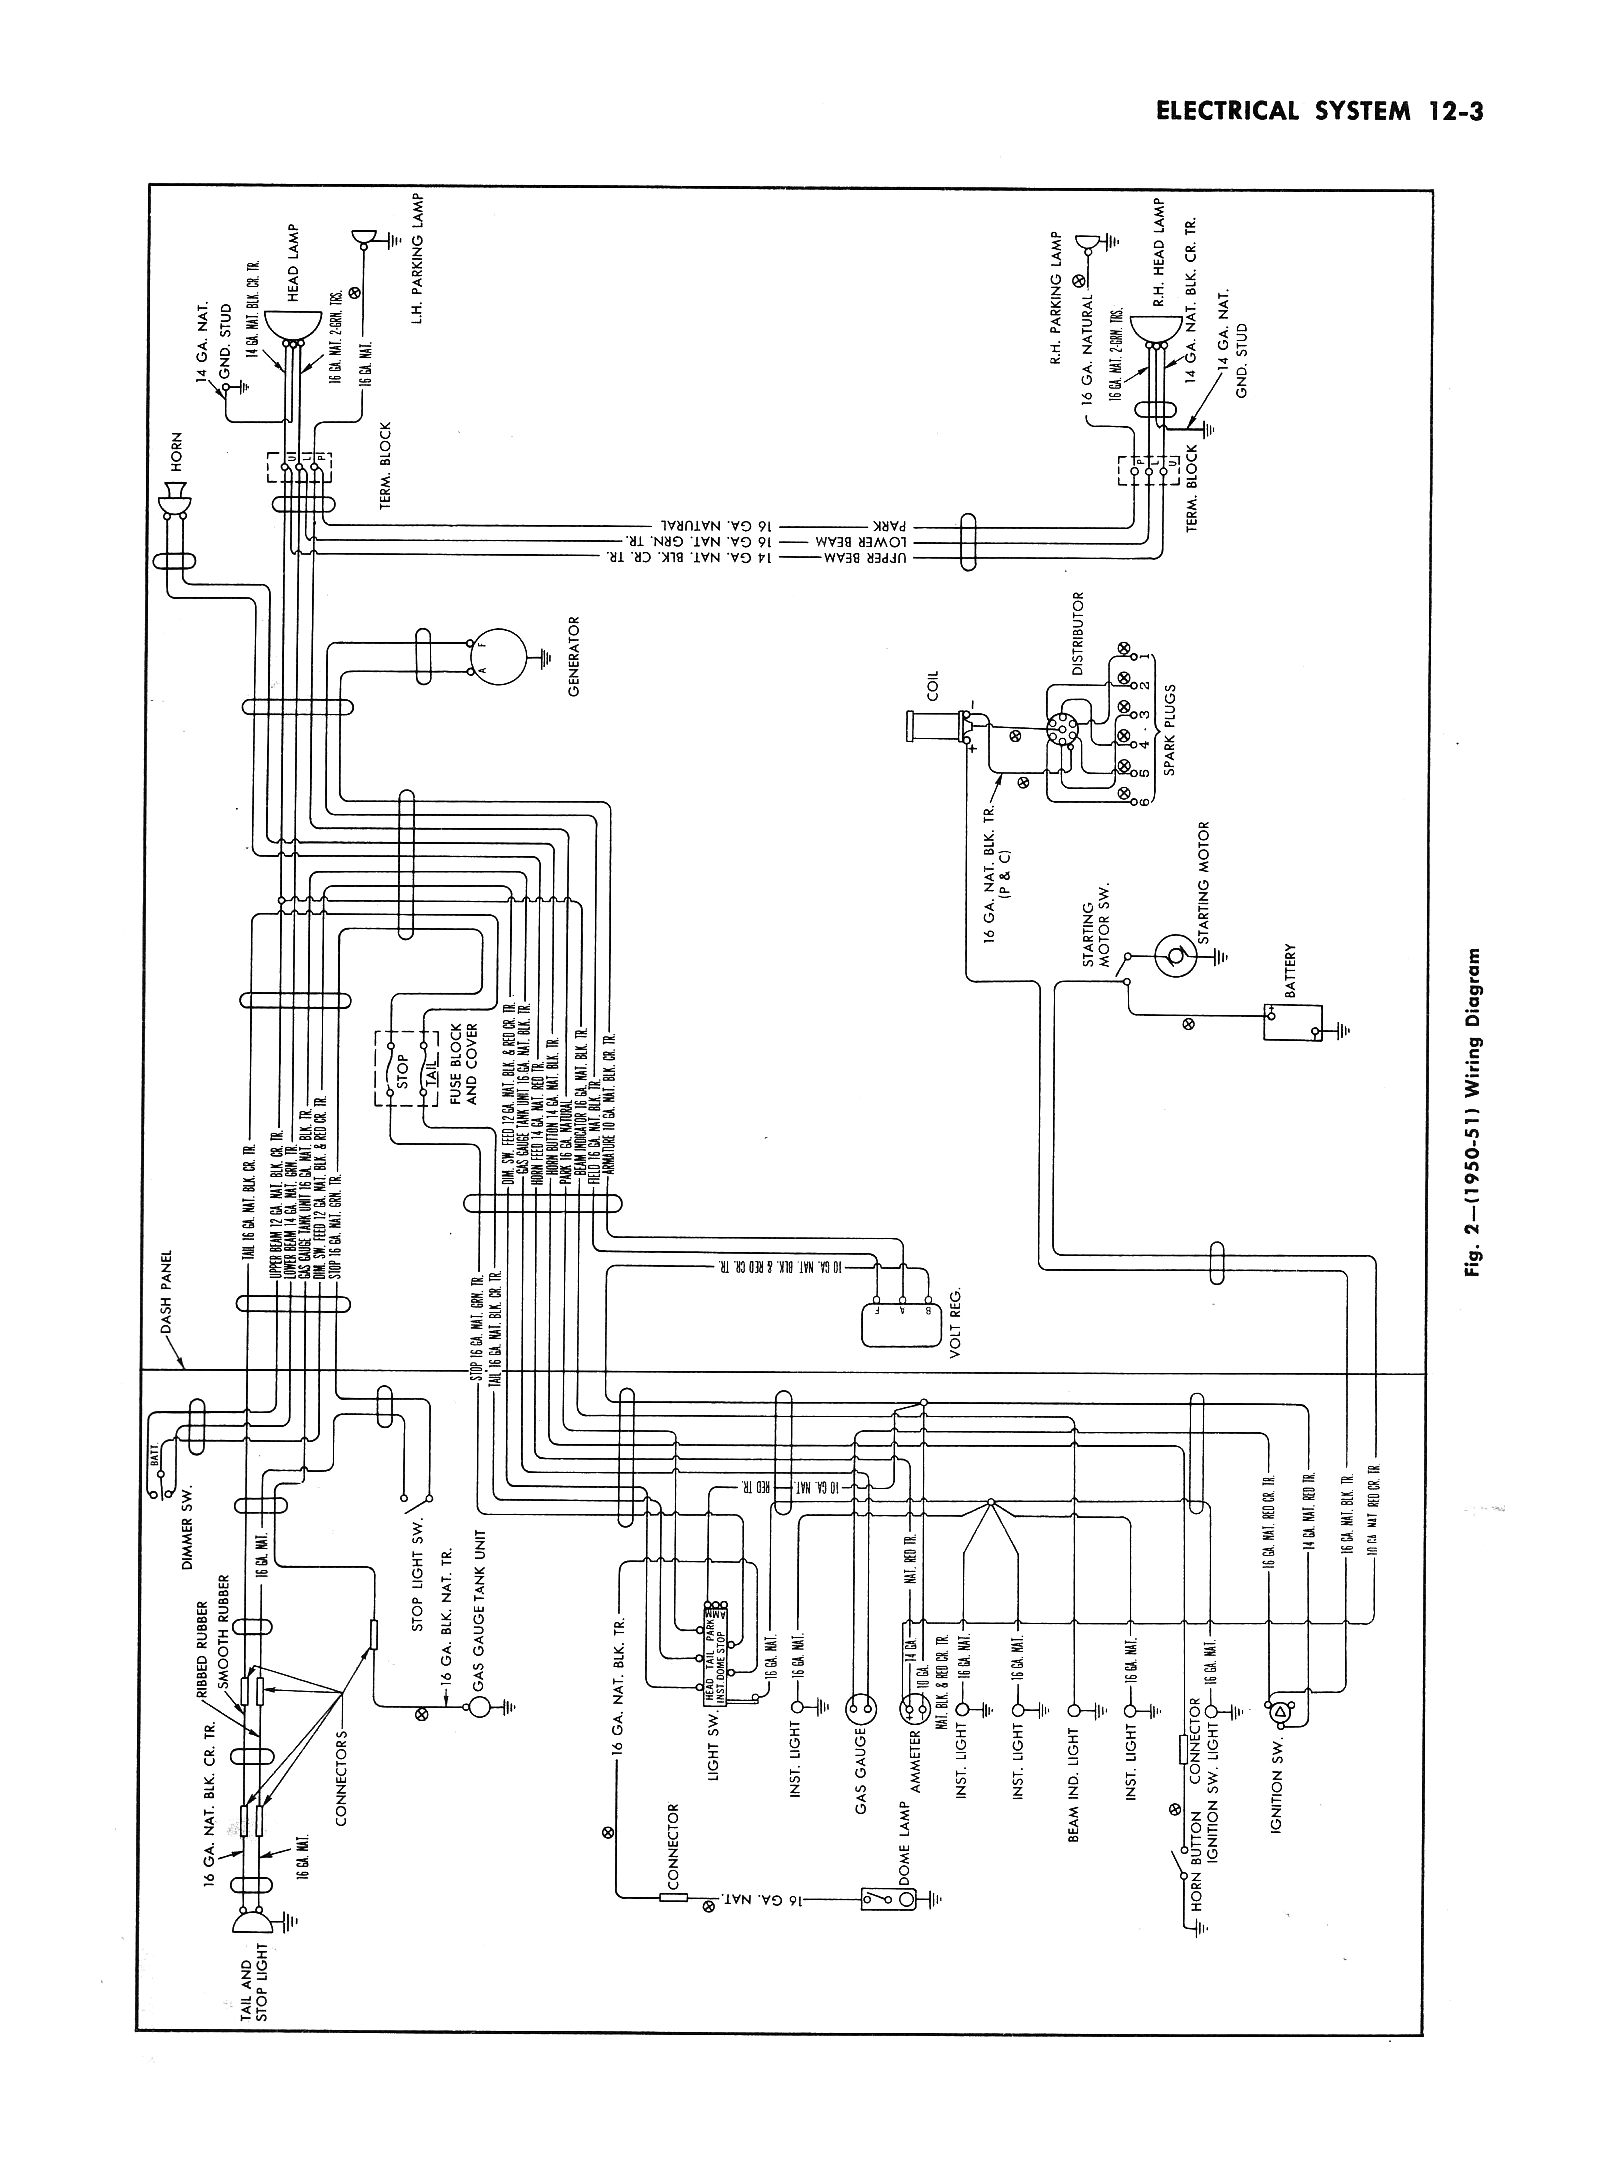 1951 ignition switch wiring question - the 1947 - present ... 1951 chevy truck wiring harness diagram 1951 chevy truck wiring diagram